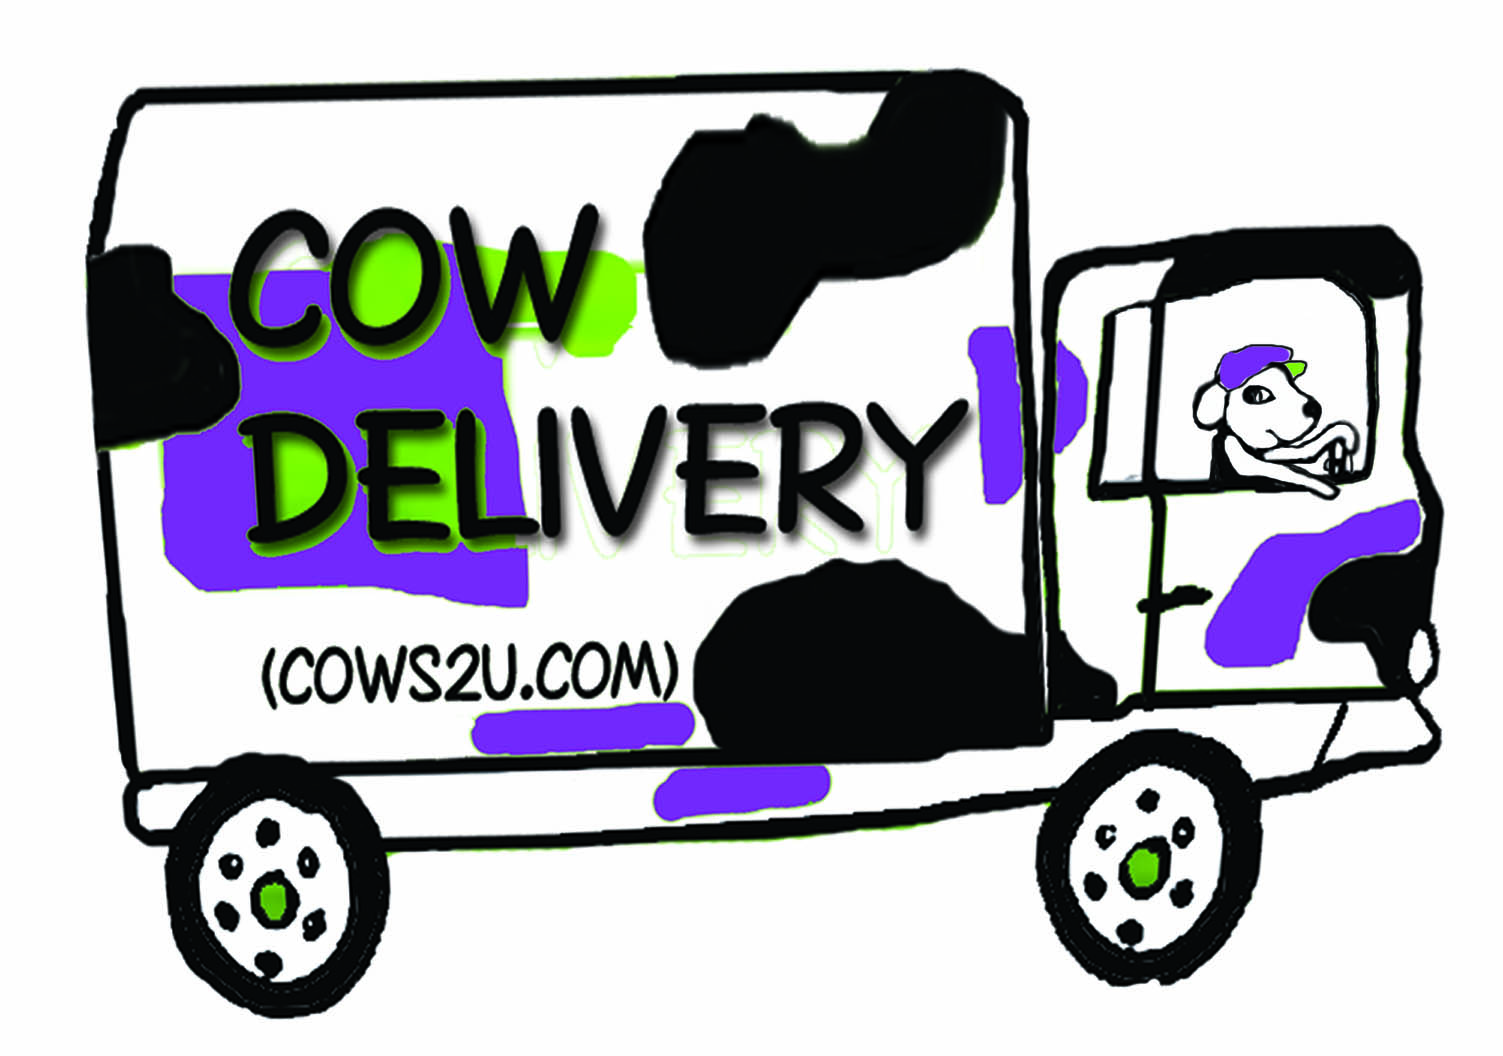 Cow Delivery